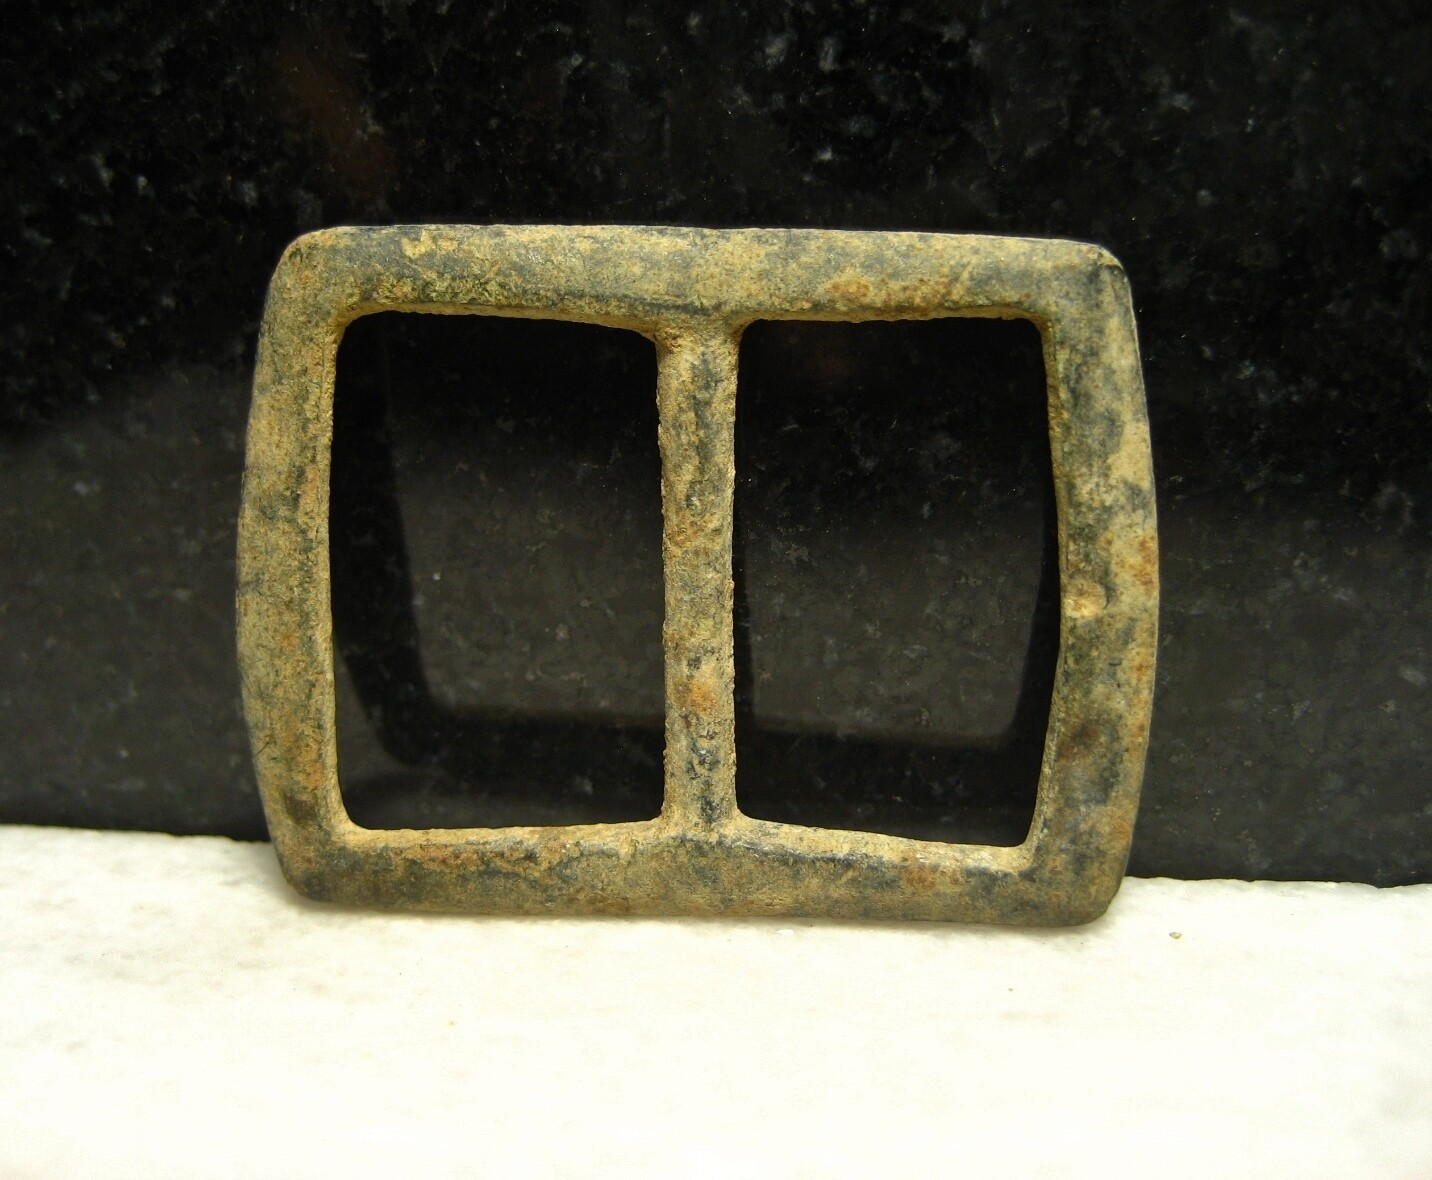 JUST ADDED ON 8/29 - ANTIETAM CAMPAIGN / WHITE'S FORD - CONFEDERATE CROSSING POINT ON THE POTOMAC - Brass Buckle